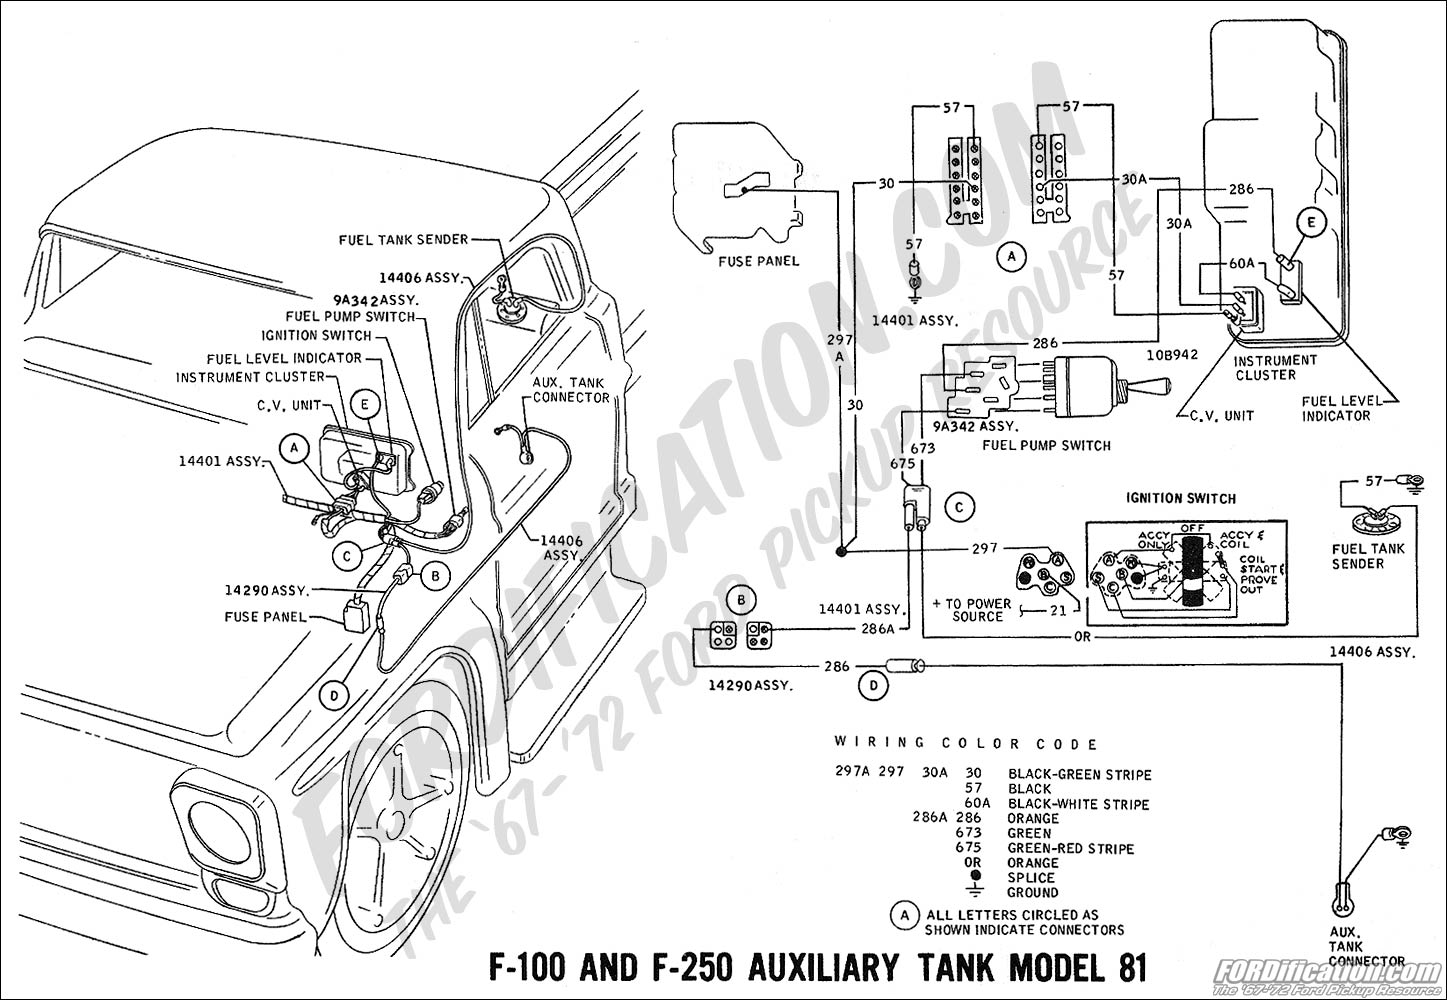 1979 F250 Fuse Box - Wiring Data Diagram  Ford E Wiring Diagram on 1988 ford bronco wiring diagram, 1988 ford mustang wiring diagram, 1988 ford thunderbird wiring diagram, 1988 ford ranger wiring diagram, 1988 porsche 911 wiring diagram, 1988 ford f250 wiring diagram, 1988 buick lesabre wiring diagram, 1988 ford e150 wiring diagram, 1988 ford f150 wiring diagram, 1988 ford f350 wiring diagram, 1988 chevrolet suburban wiring diagram, 1988 jeep wrangler wiring diagram, 1988 ford f700 wiring diagram, 1988 toyota camry wiring diagram, 1988 lincoln town car wiring diagram, 1988 toyota corolla wiring diagram, 1988 mercury grand marquis wiring diagram, 1988 dodge dakota wiring diagram, 1988 jeep cherokee wiring diagram, 1988 honda civic wiring diagram,